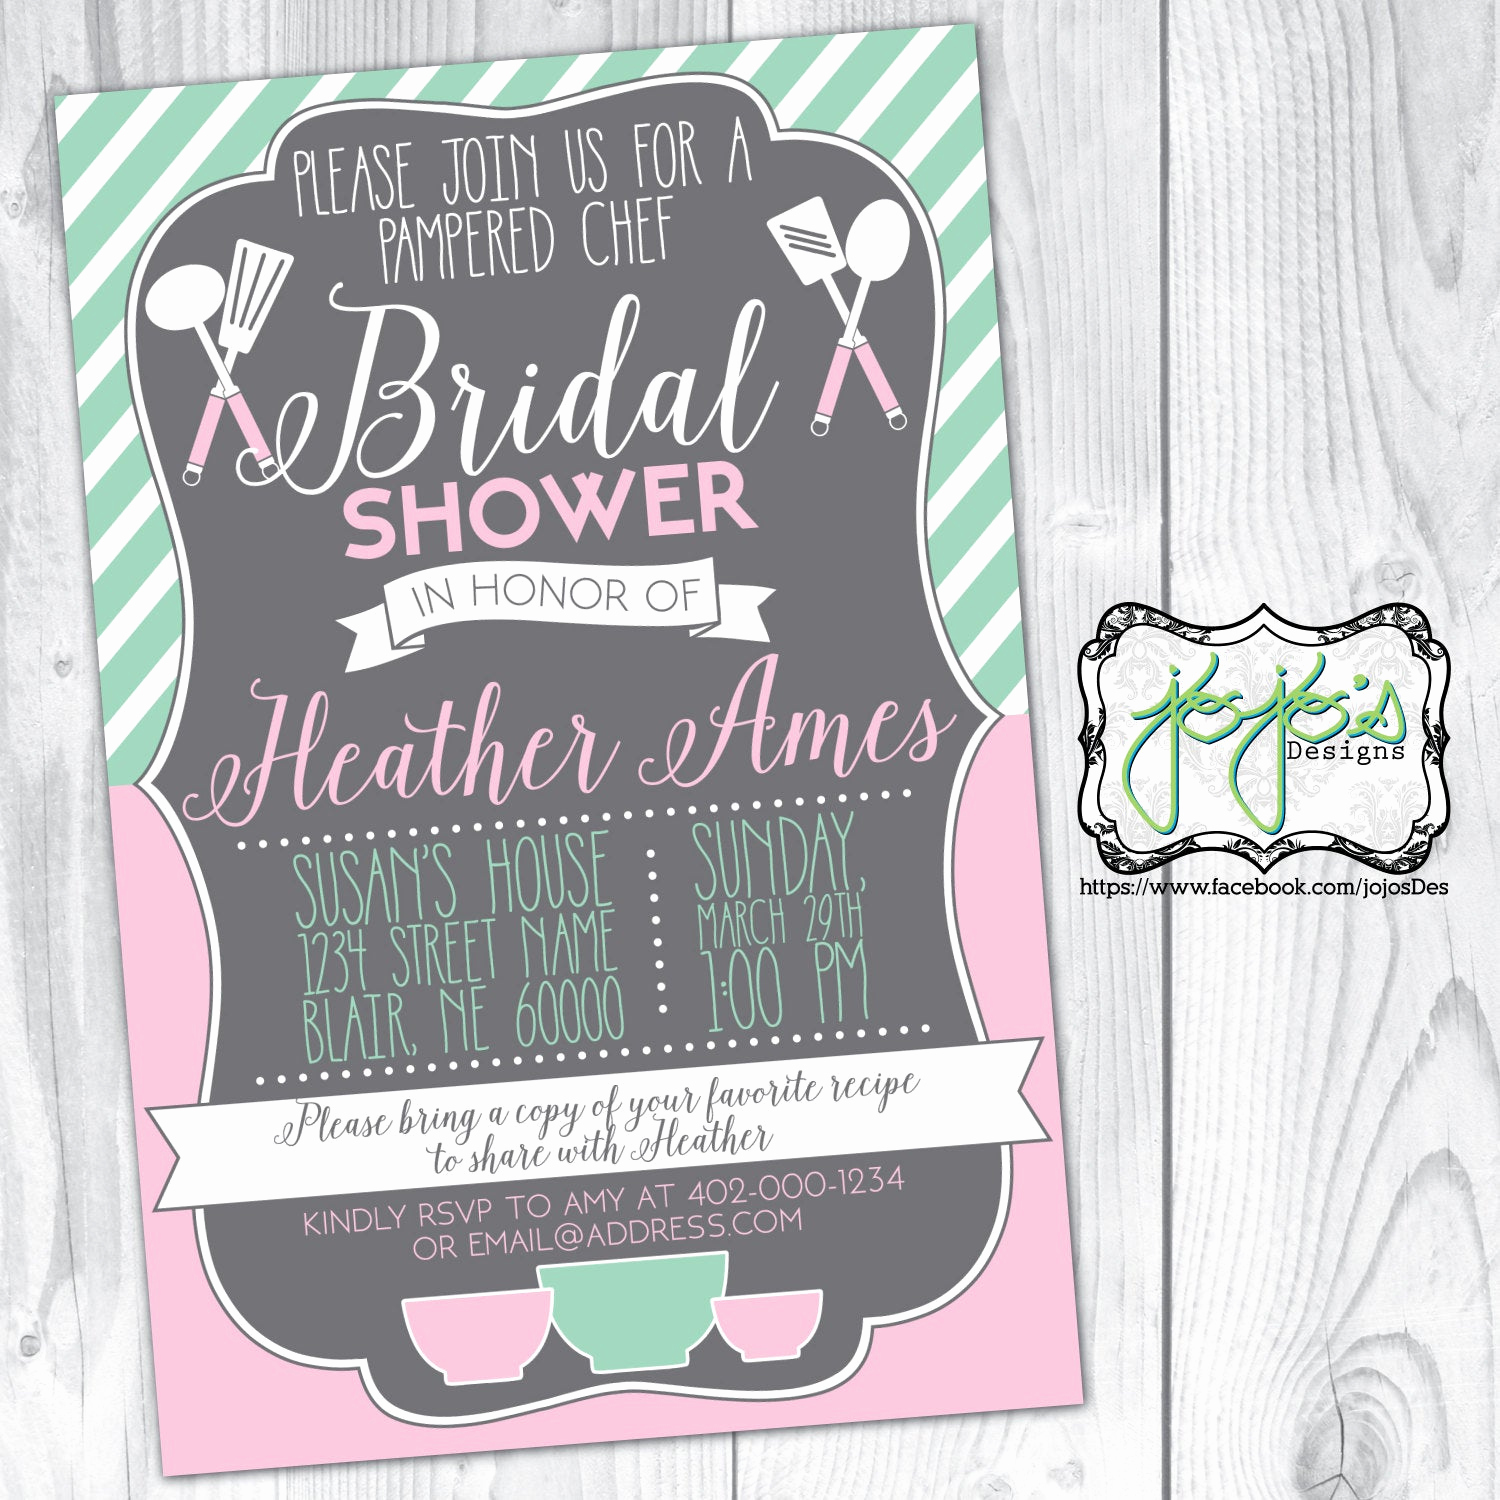 Pampered Chef Party Invitation Elegant Pampered Chef Bridal Shower Invitation Blush Pink & Mint